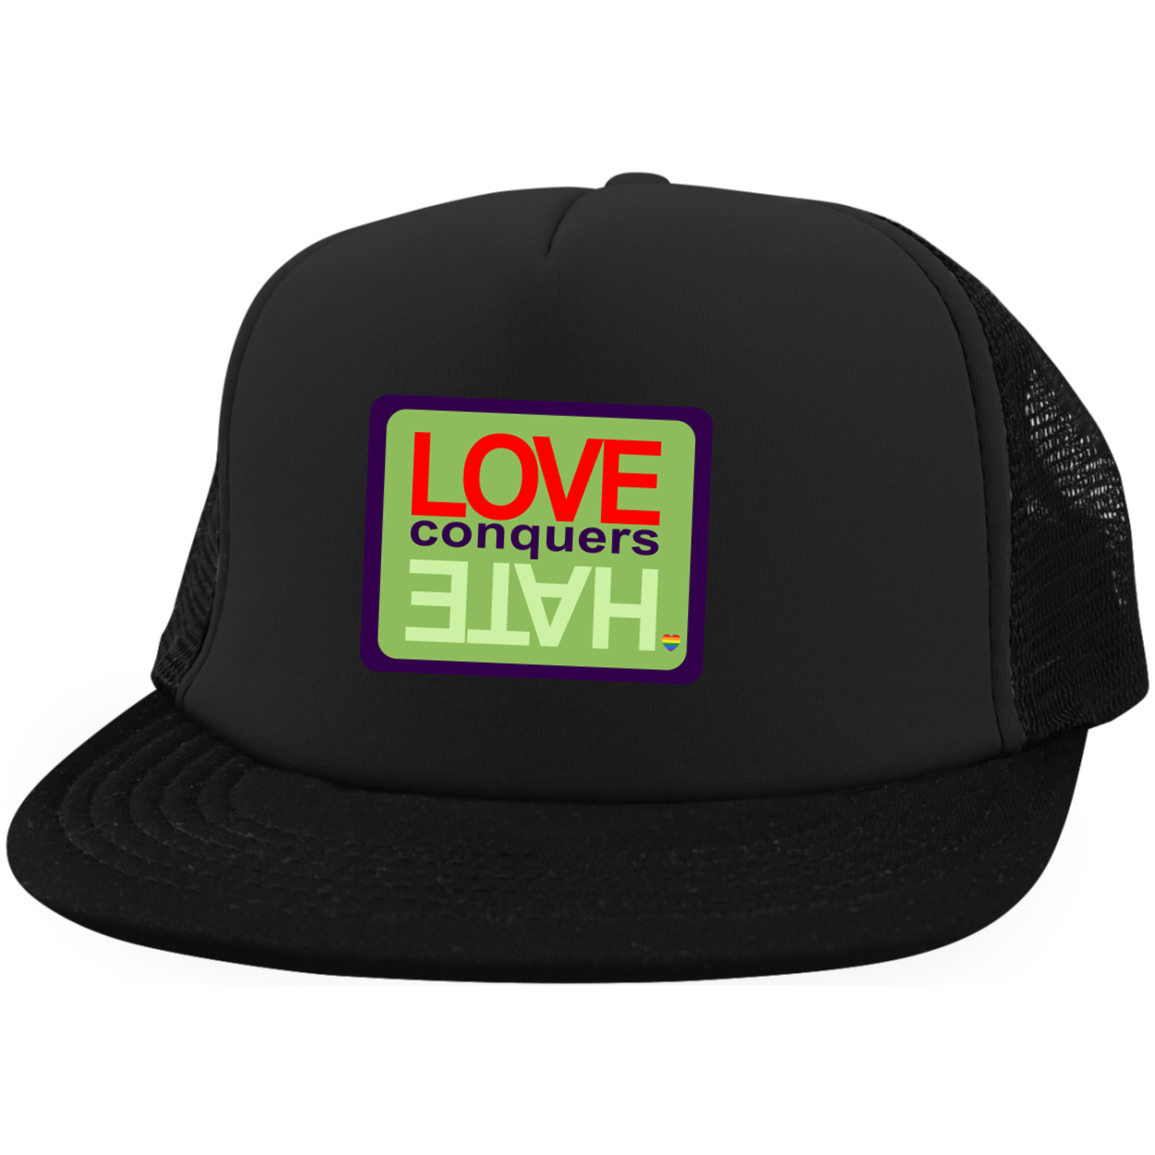 Love Conquers Hate District Trucker Hat with Snapback